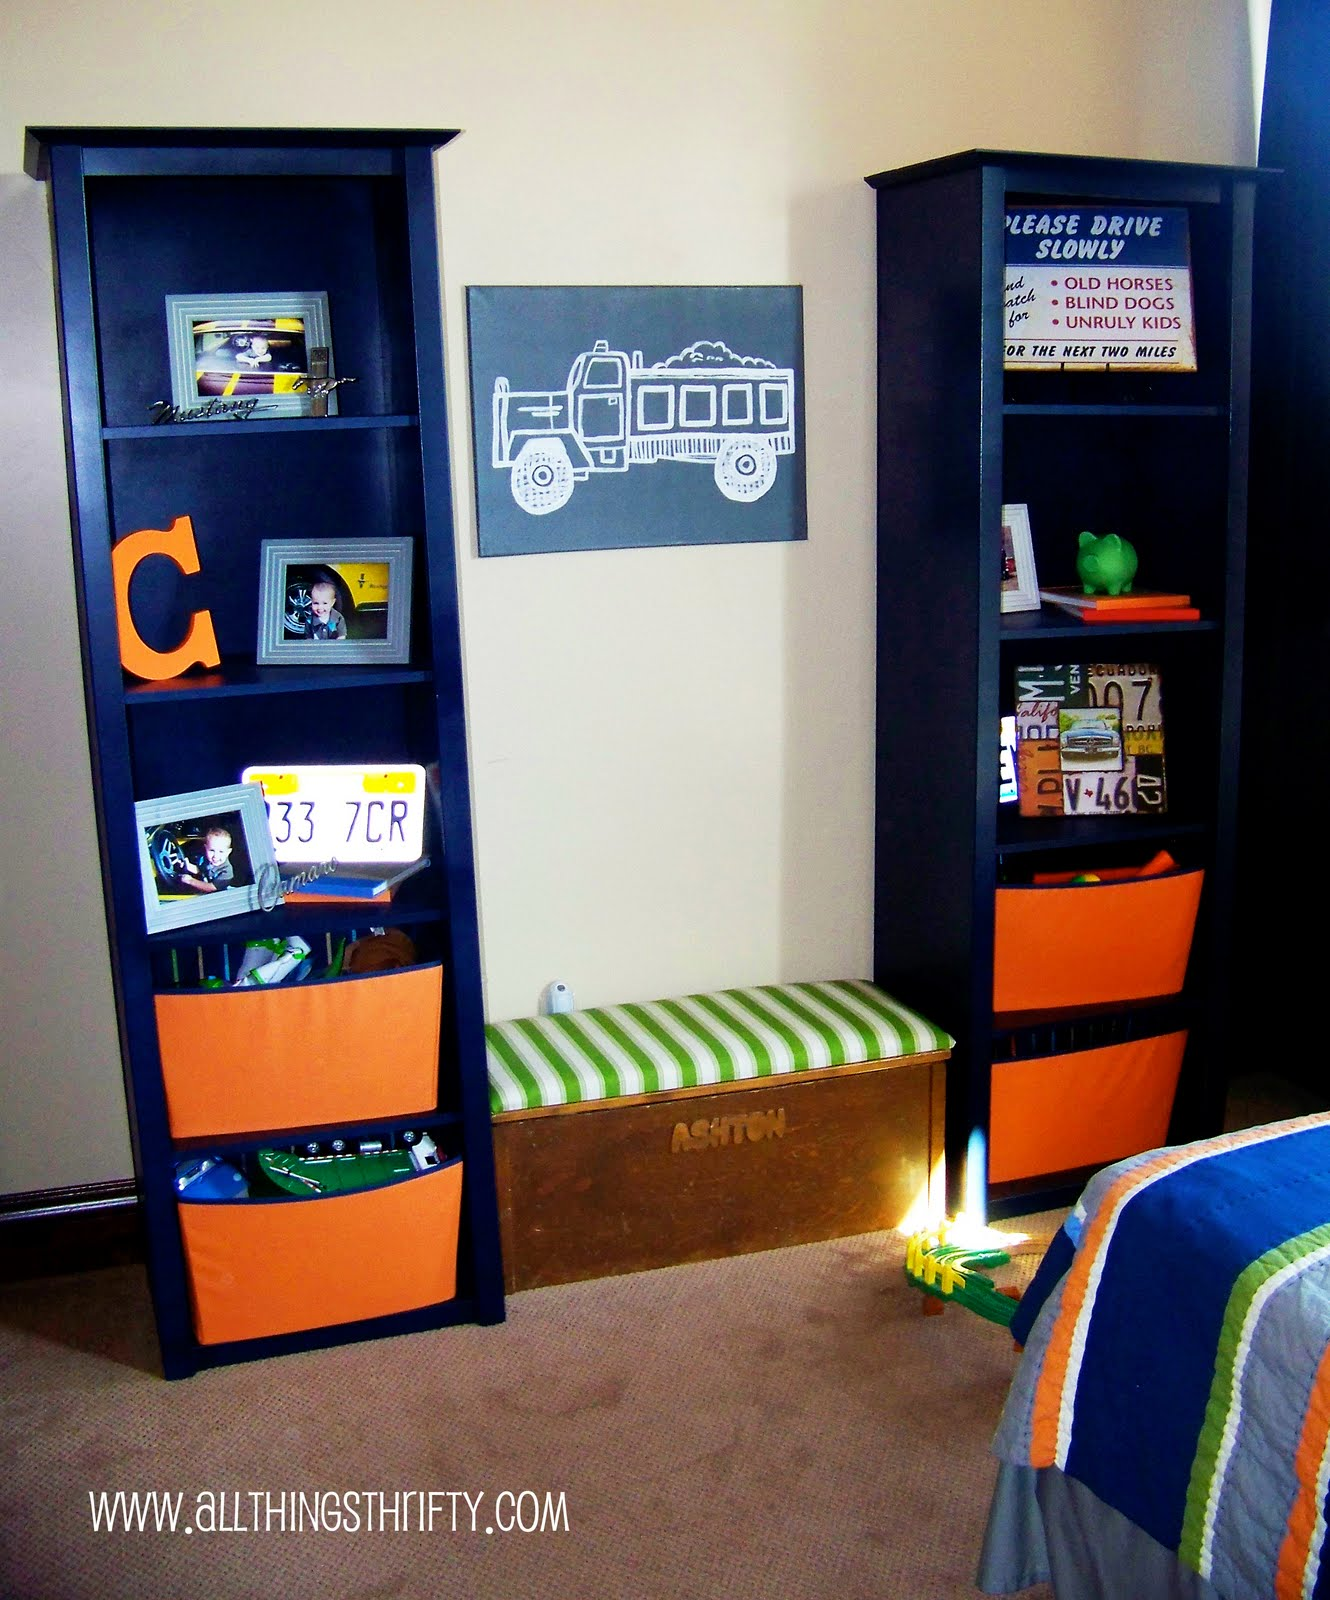 Next Childrens Bedroom Accessories 17 Best Images About Little Bit Funky Boys On Pinterest Beds